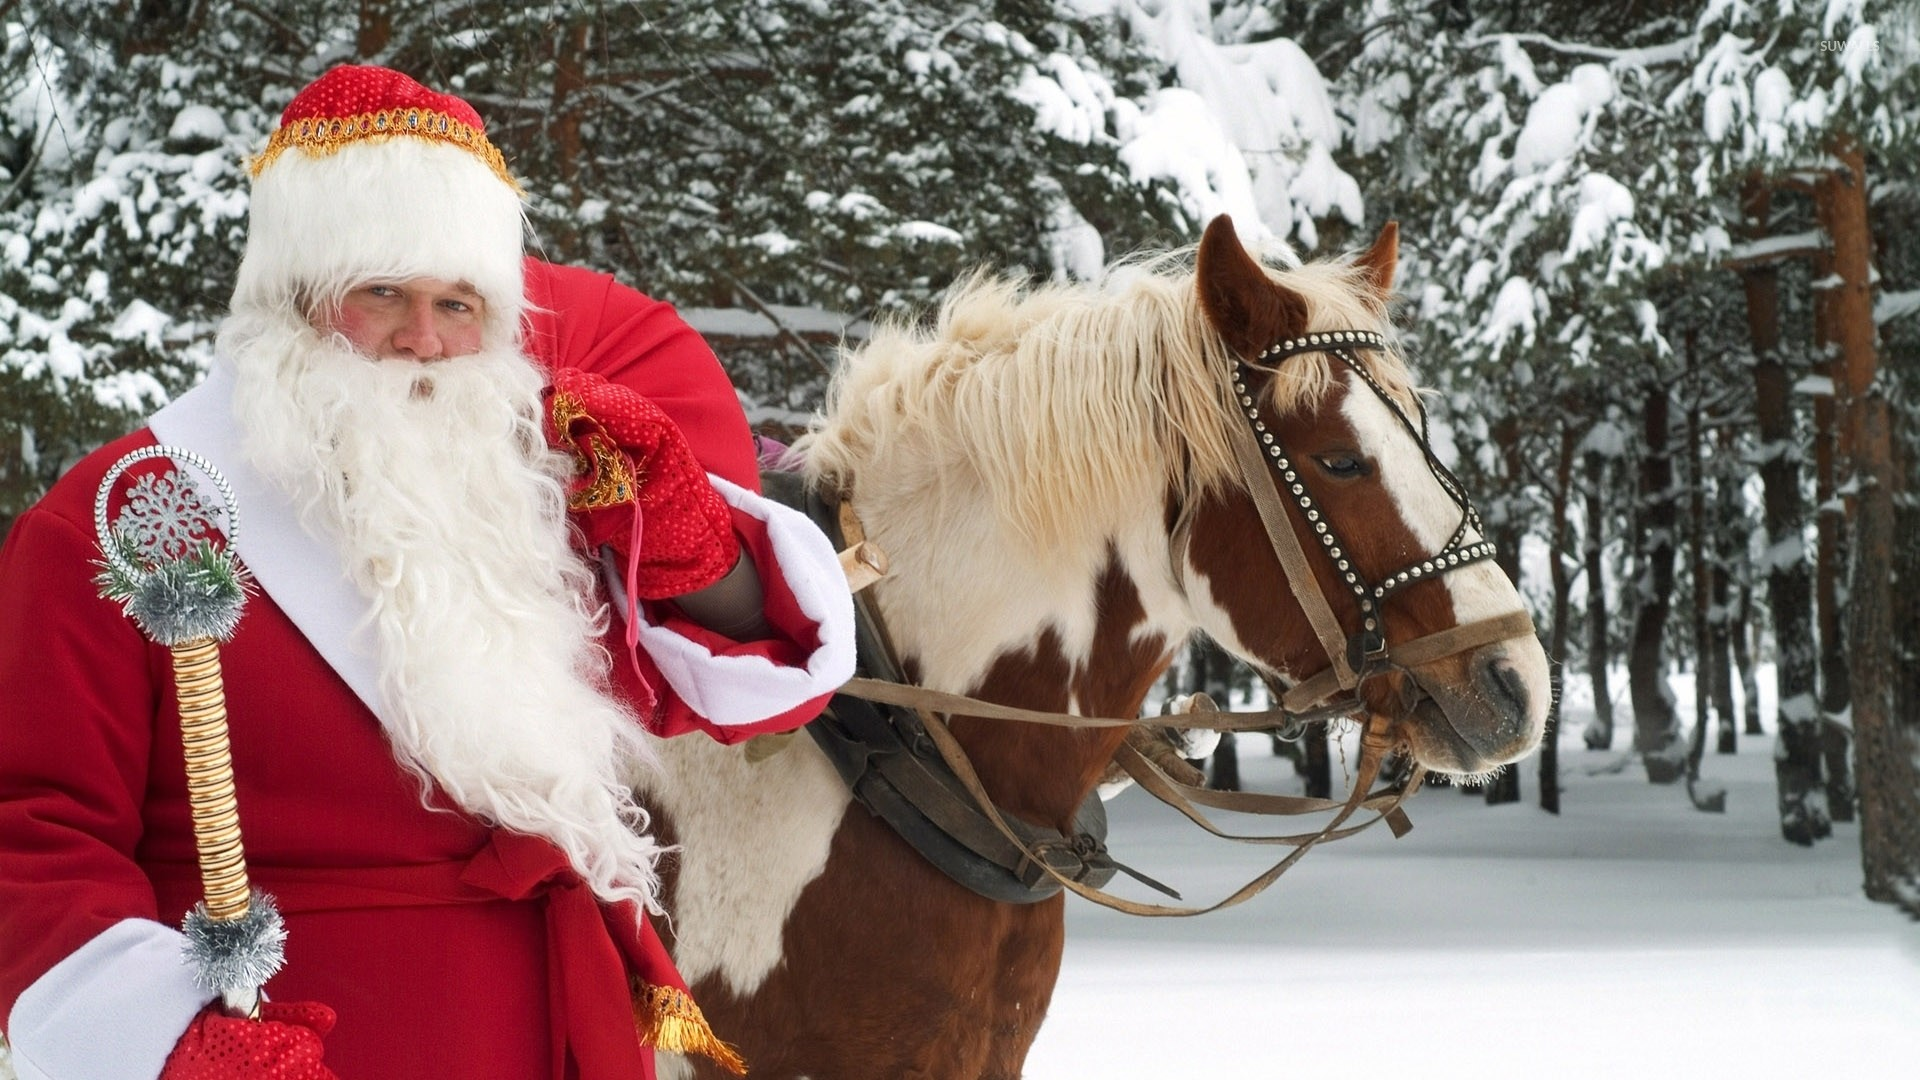 Res: 1920x1080, Santa Claus with a horse wallpaper